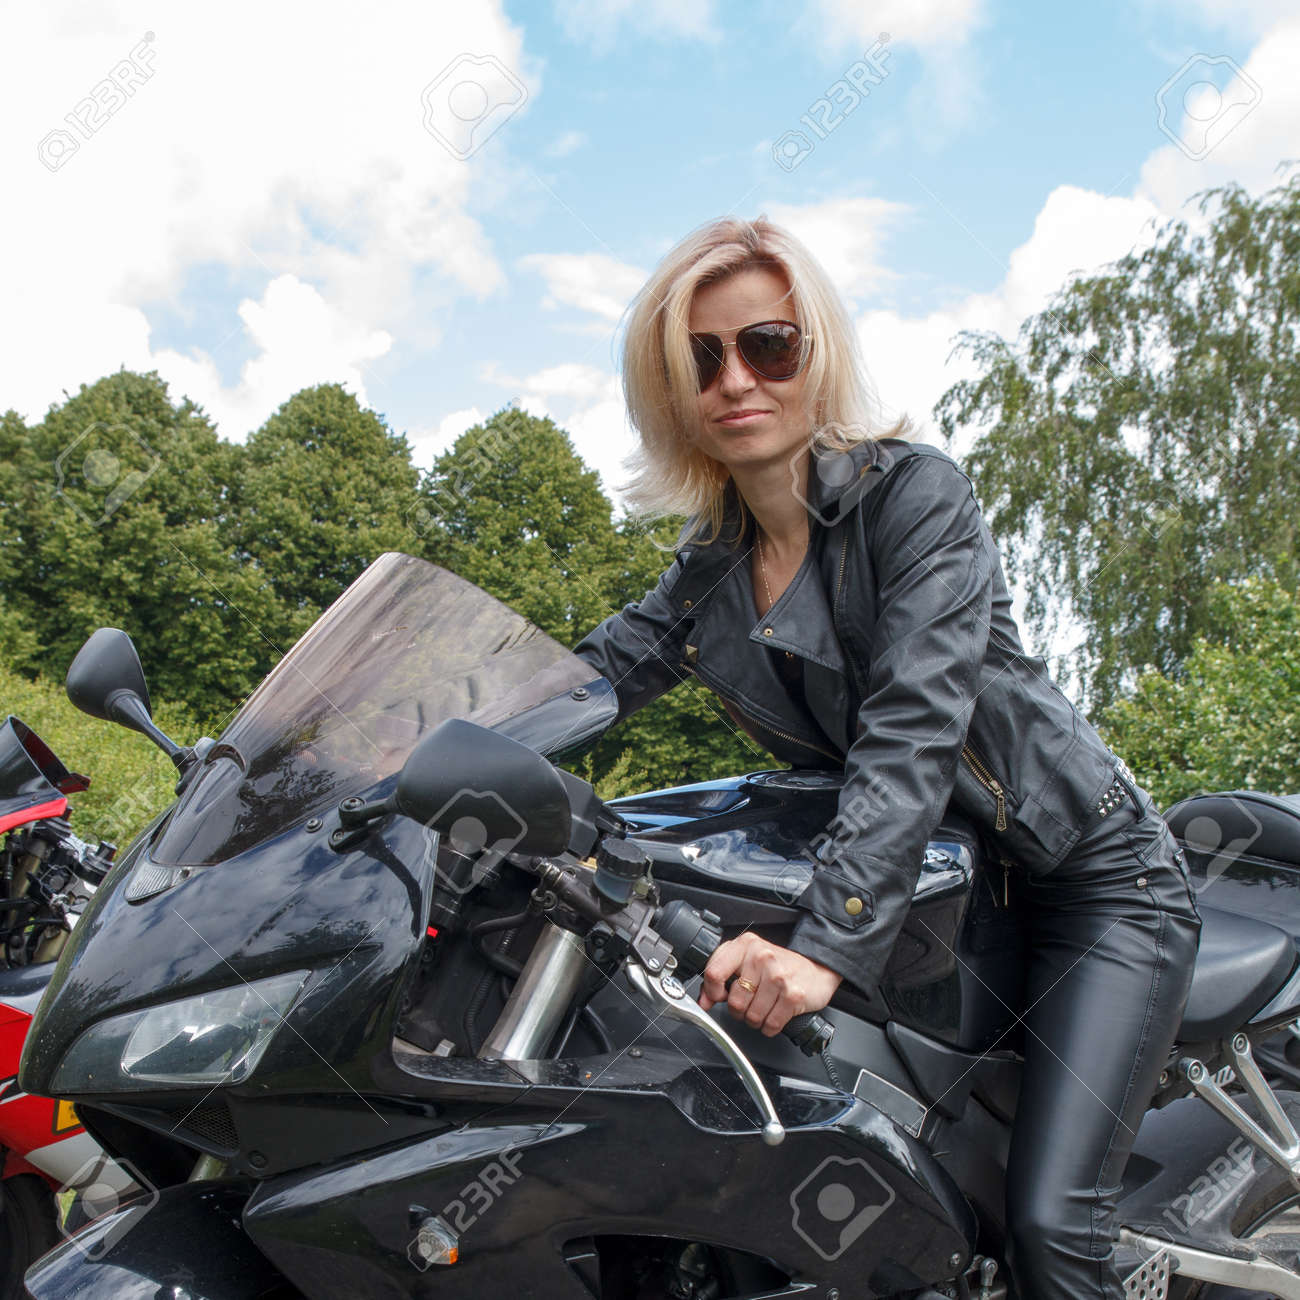 Biker clothing for women. Online clothing stores